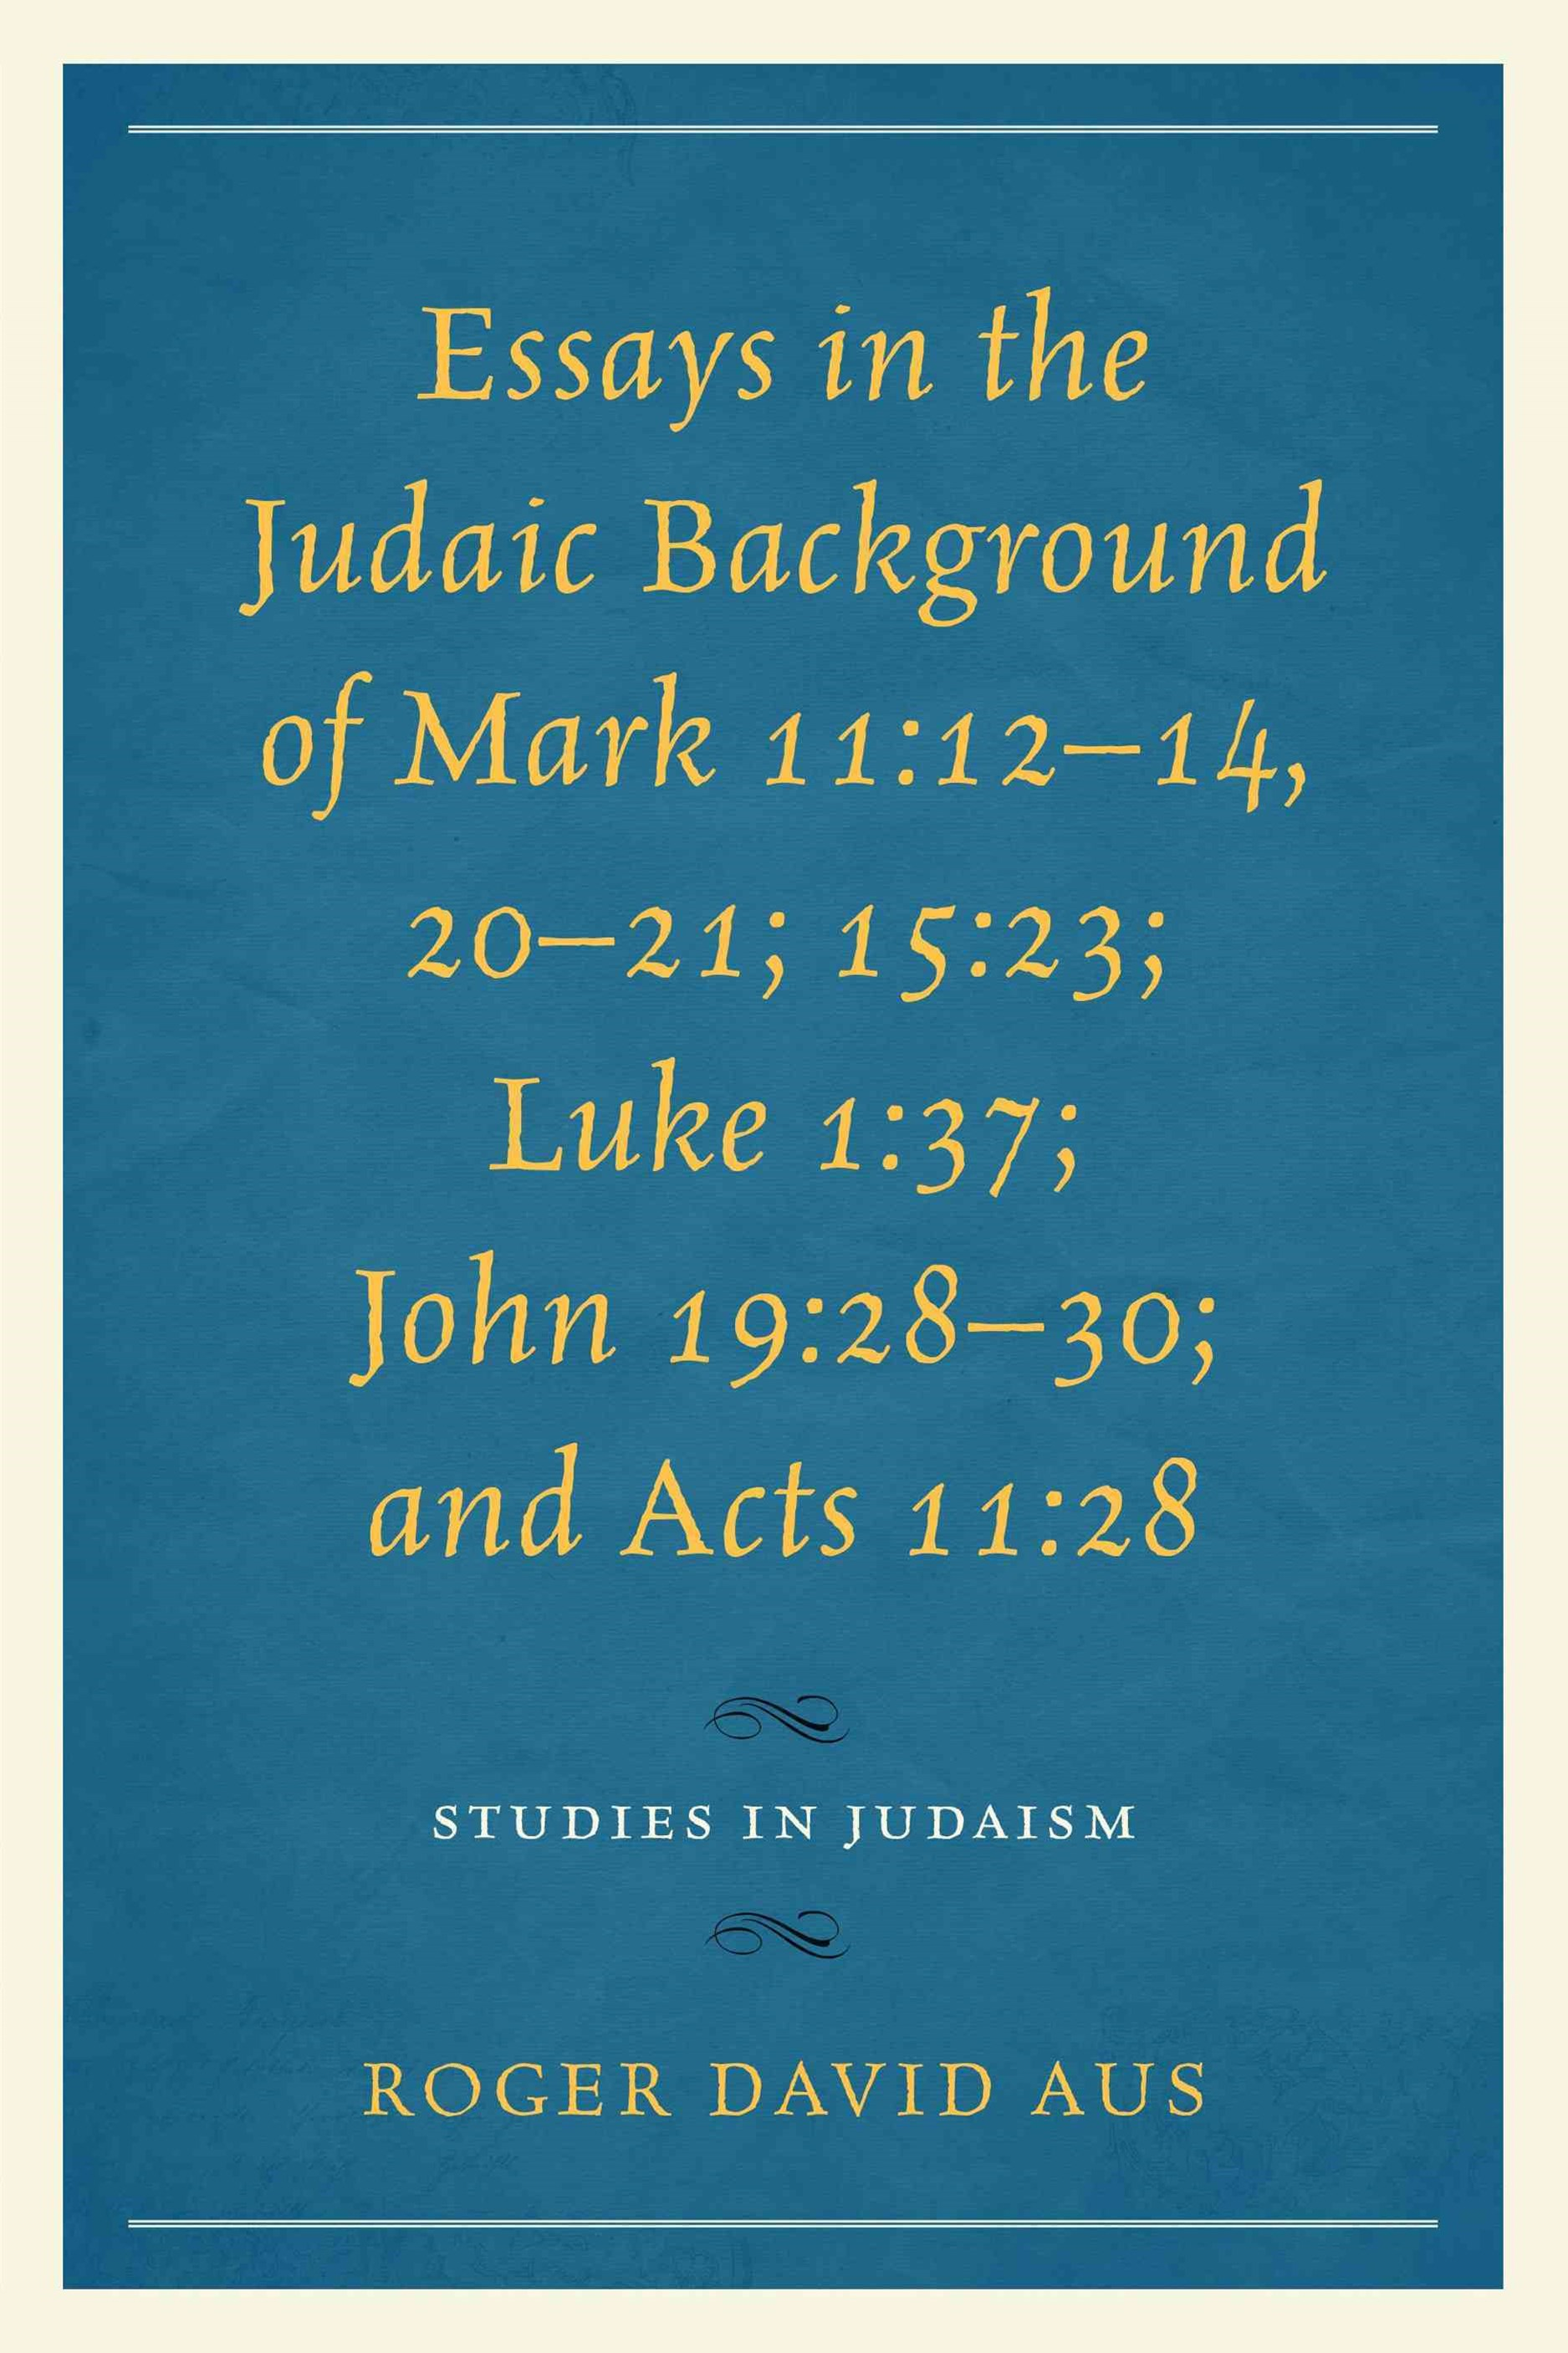 Essays in the Judaic Background of Mark 11:12-14, 20-21; 15:23; Luke 1:37; John 19:28-30; and Acts